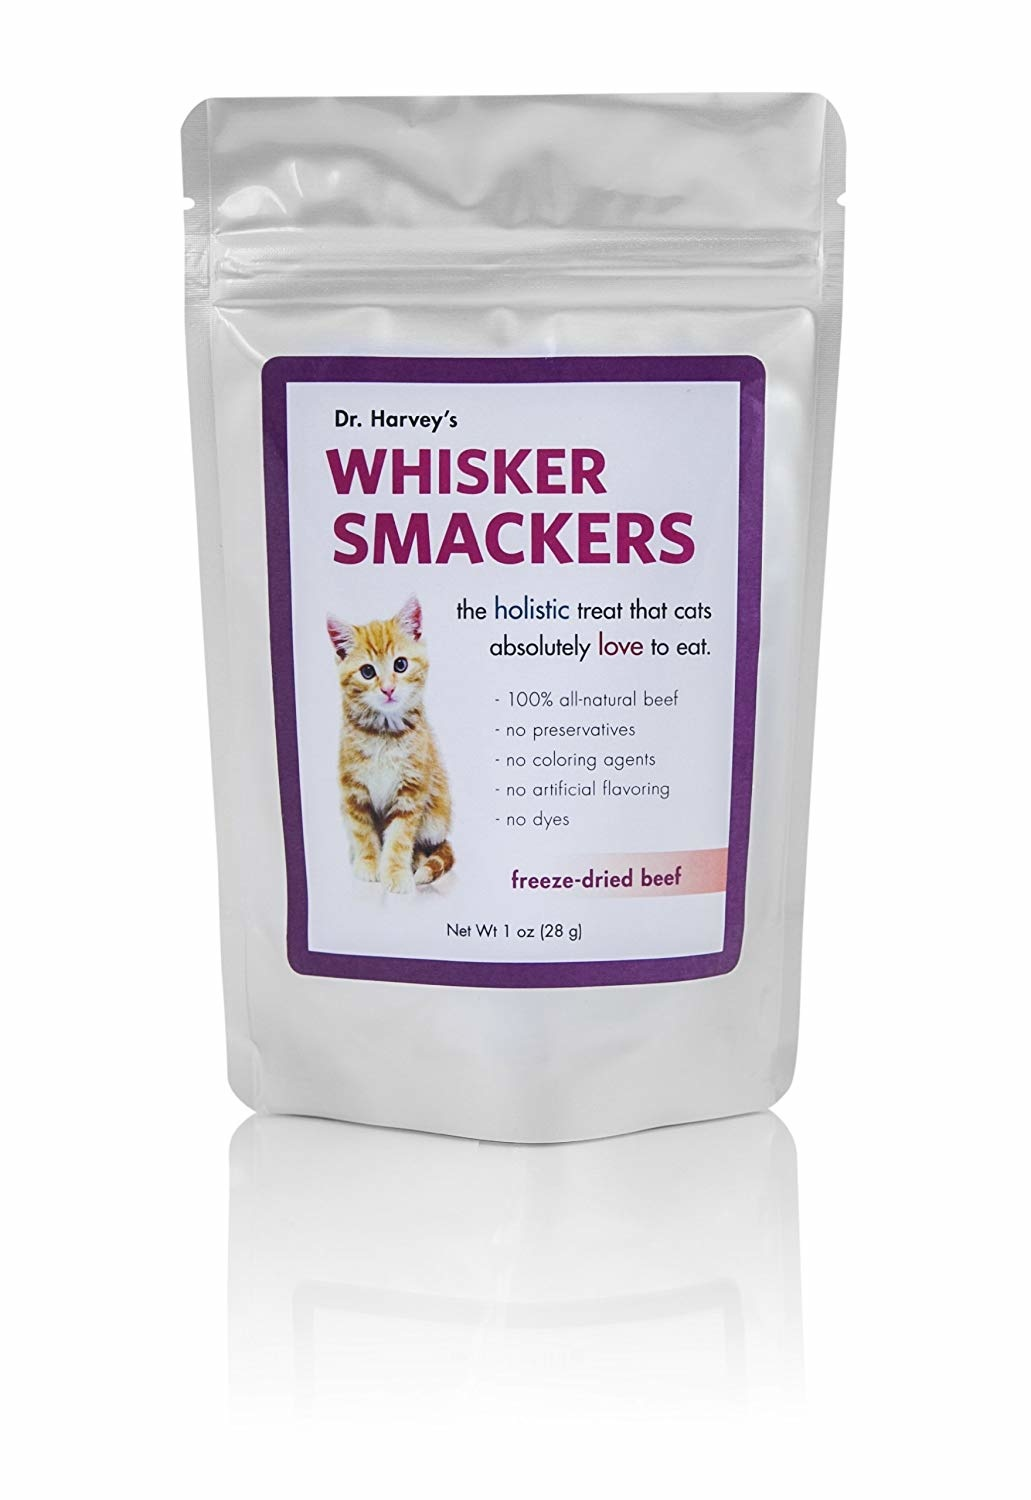 Dr Harvey's Dr. Harvey's Whisker Smackers Beef 1 oz